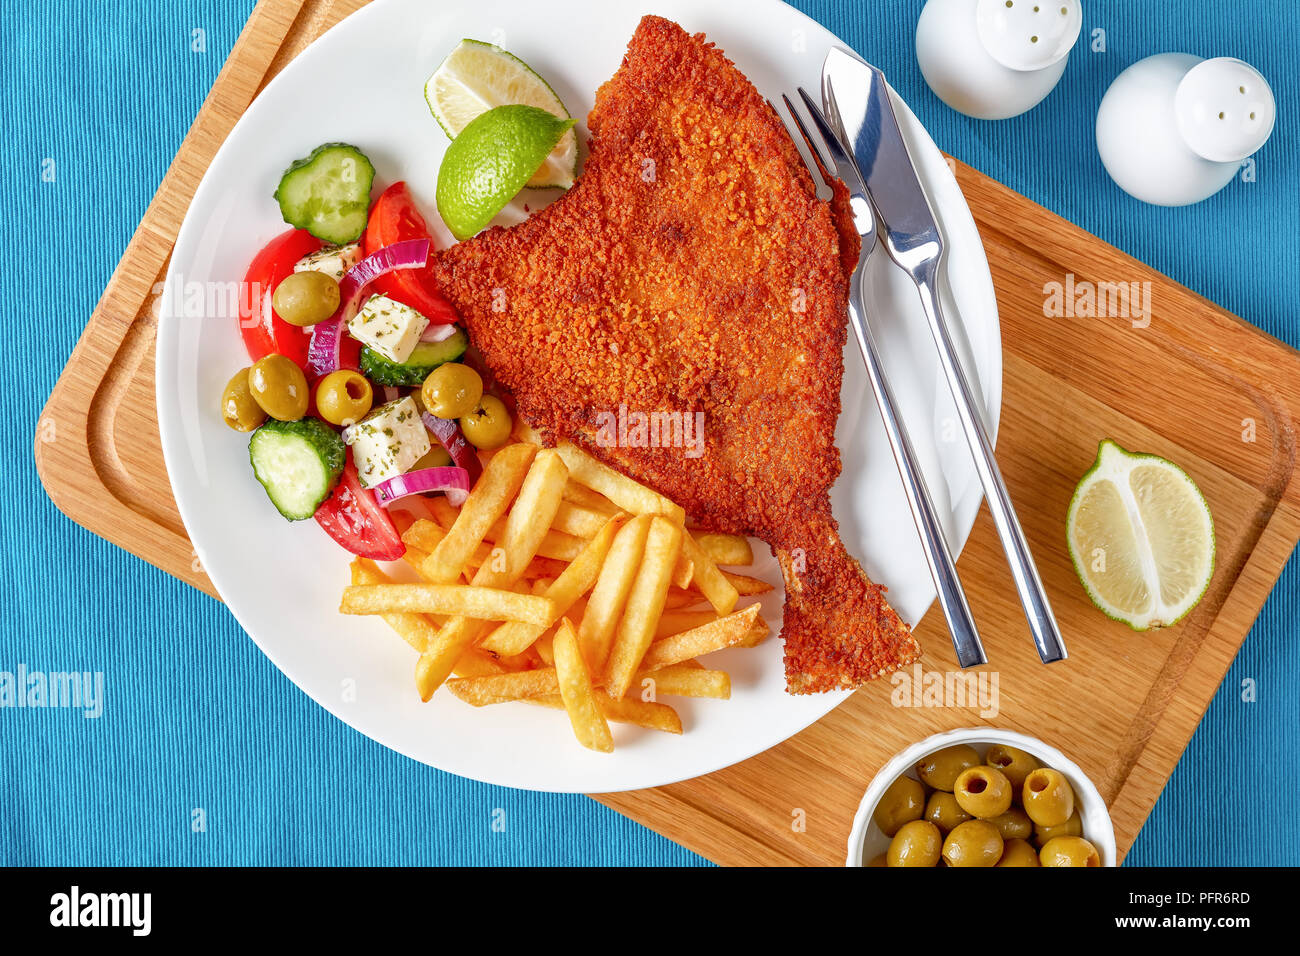 crispy fried flounder in breadcrumbs served with fresh vegetables, feta, olives greek salad and french fries on a white plate with silver fork and kni - Stock Image